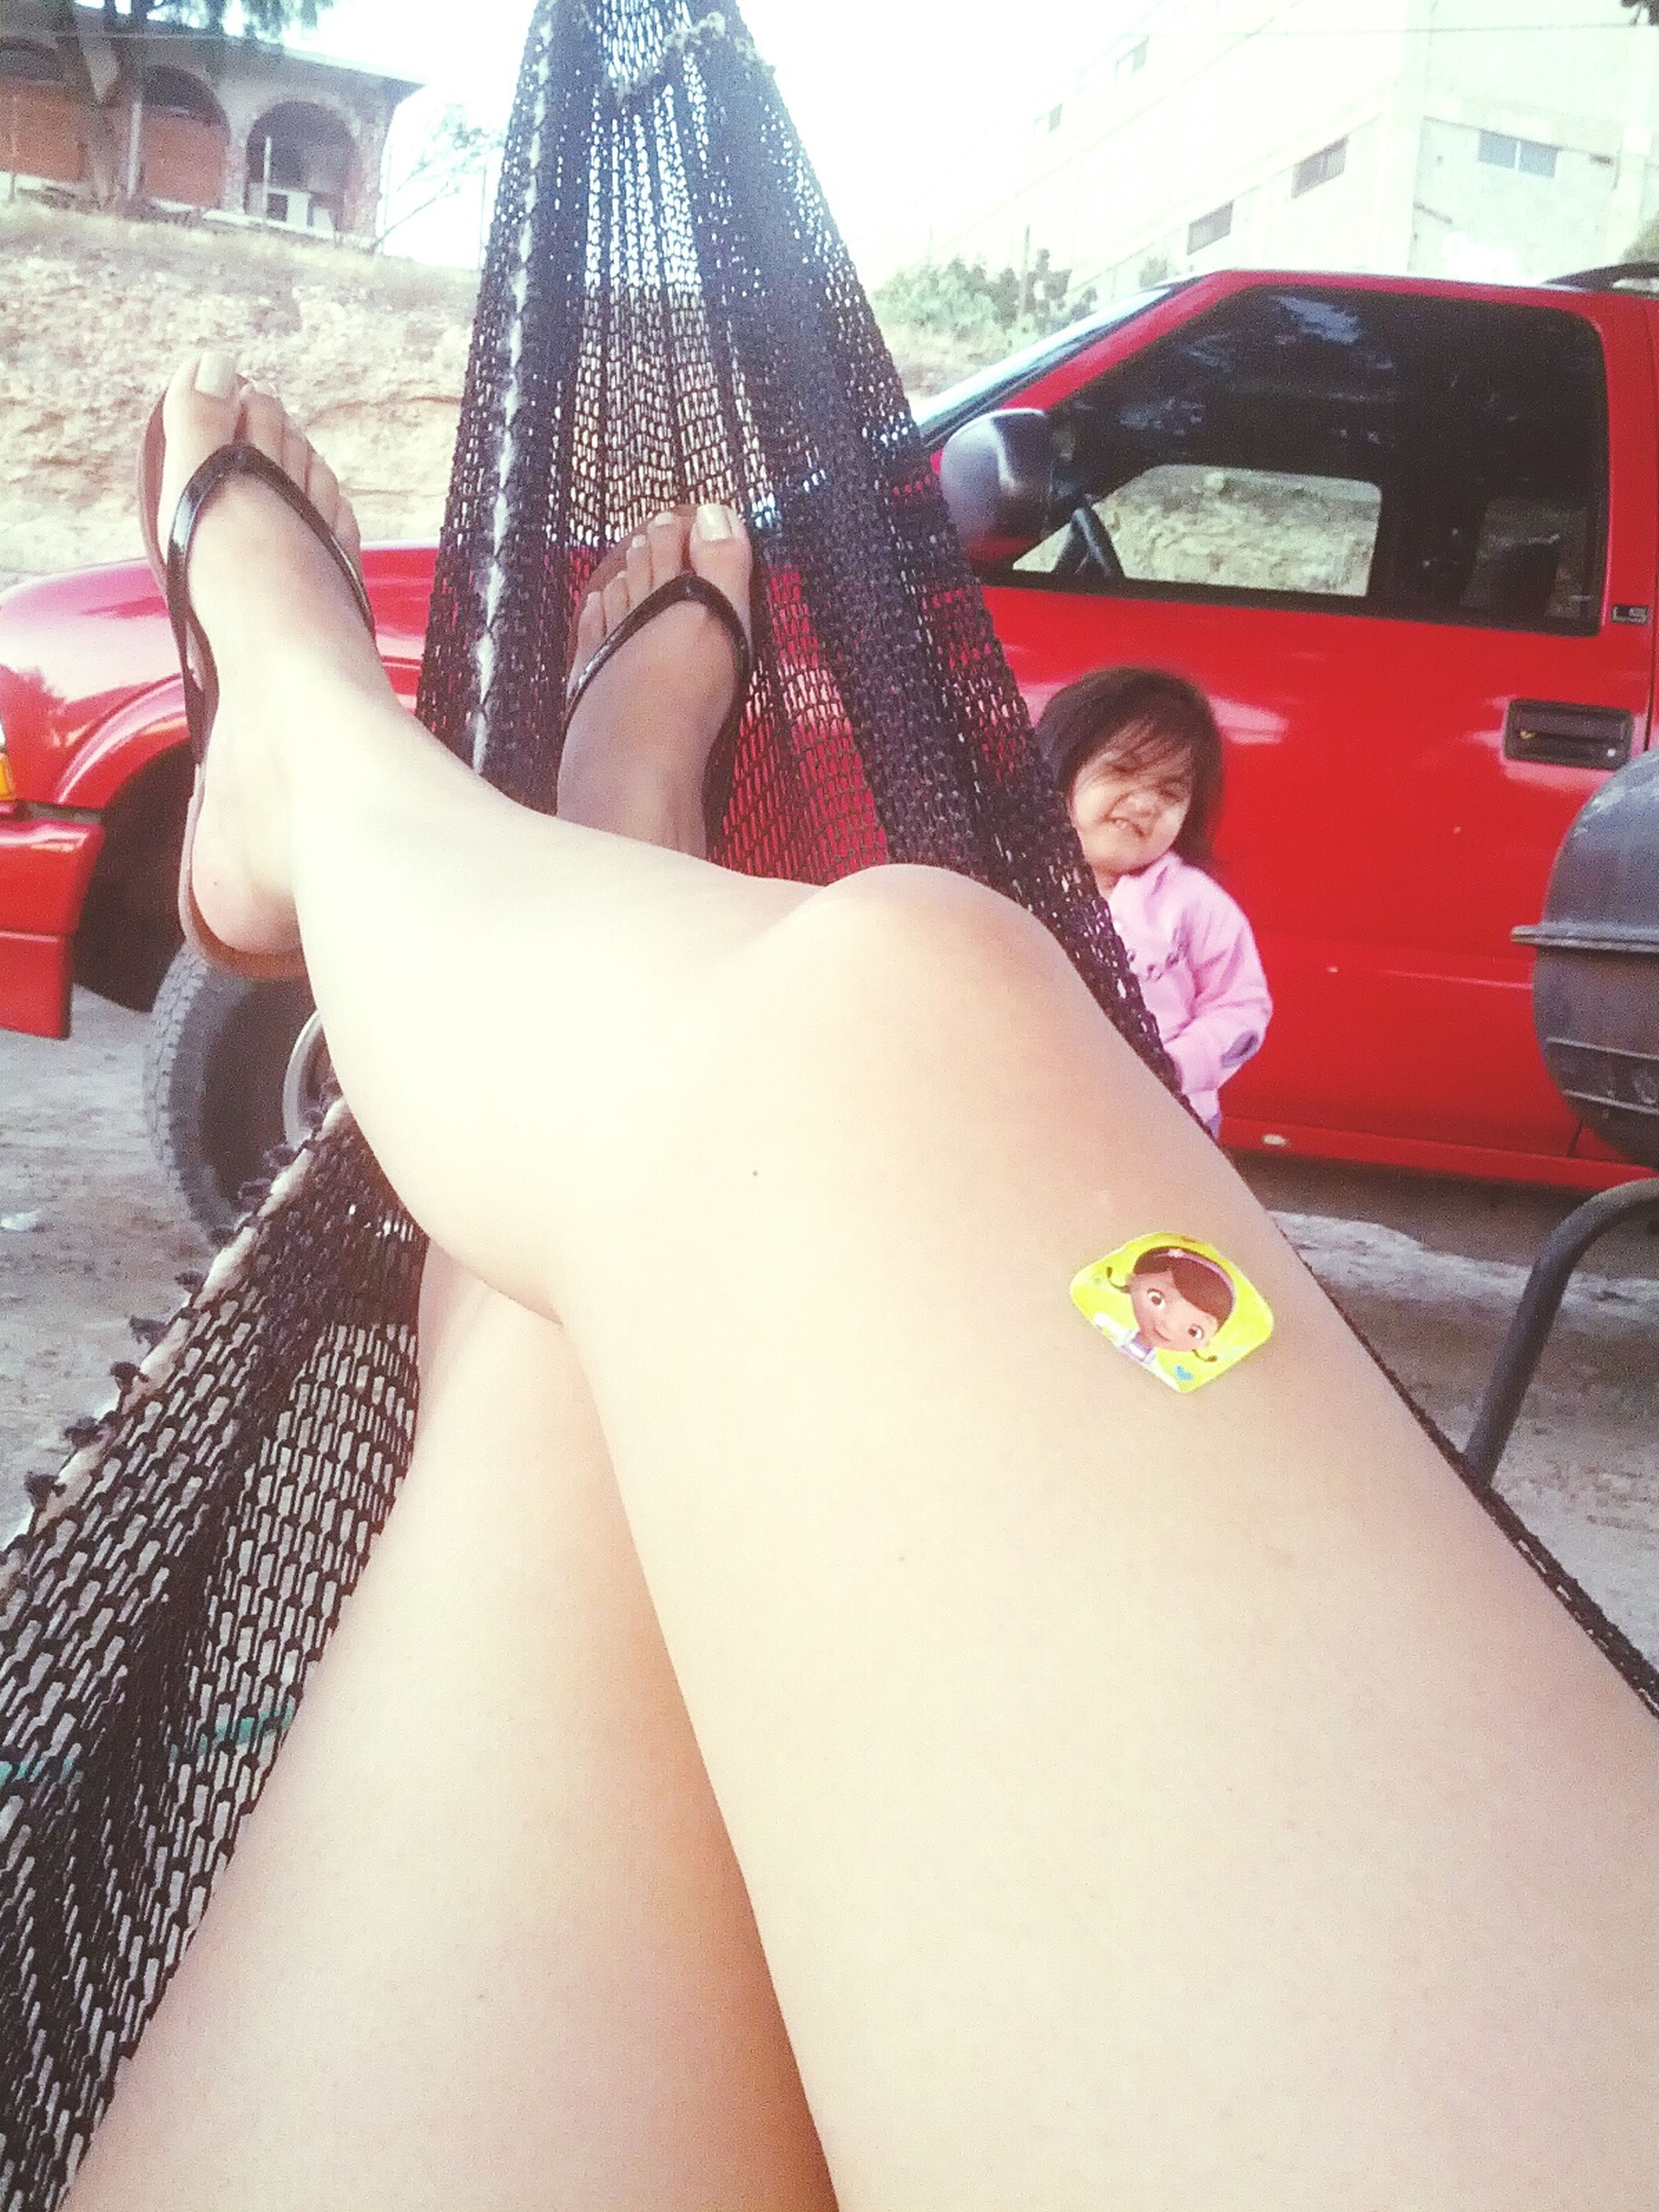 lifestyles, sitting, leisure activity, relaxation, low section, person, young women, young adult, casual clothing, lying down, resting, togetherness, relaxing, car, barefoot, legs crossed at ankle